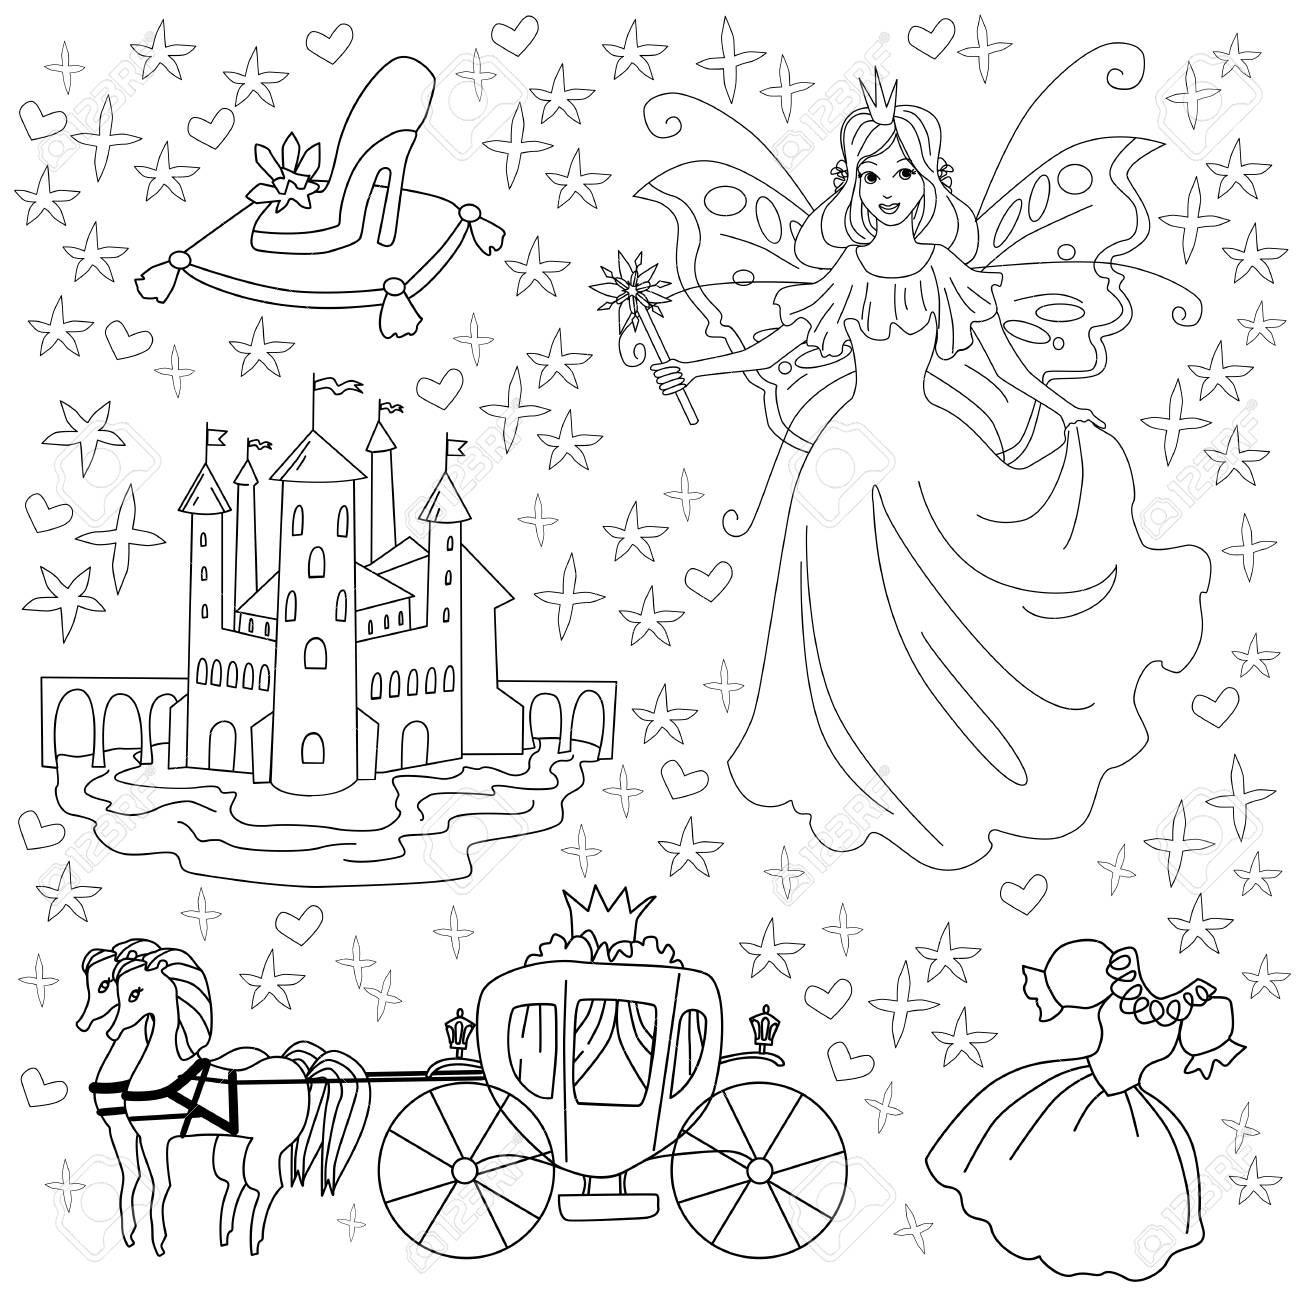 Princess chloe and her castle coloring pages - Hellokids.com | 1300x1300